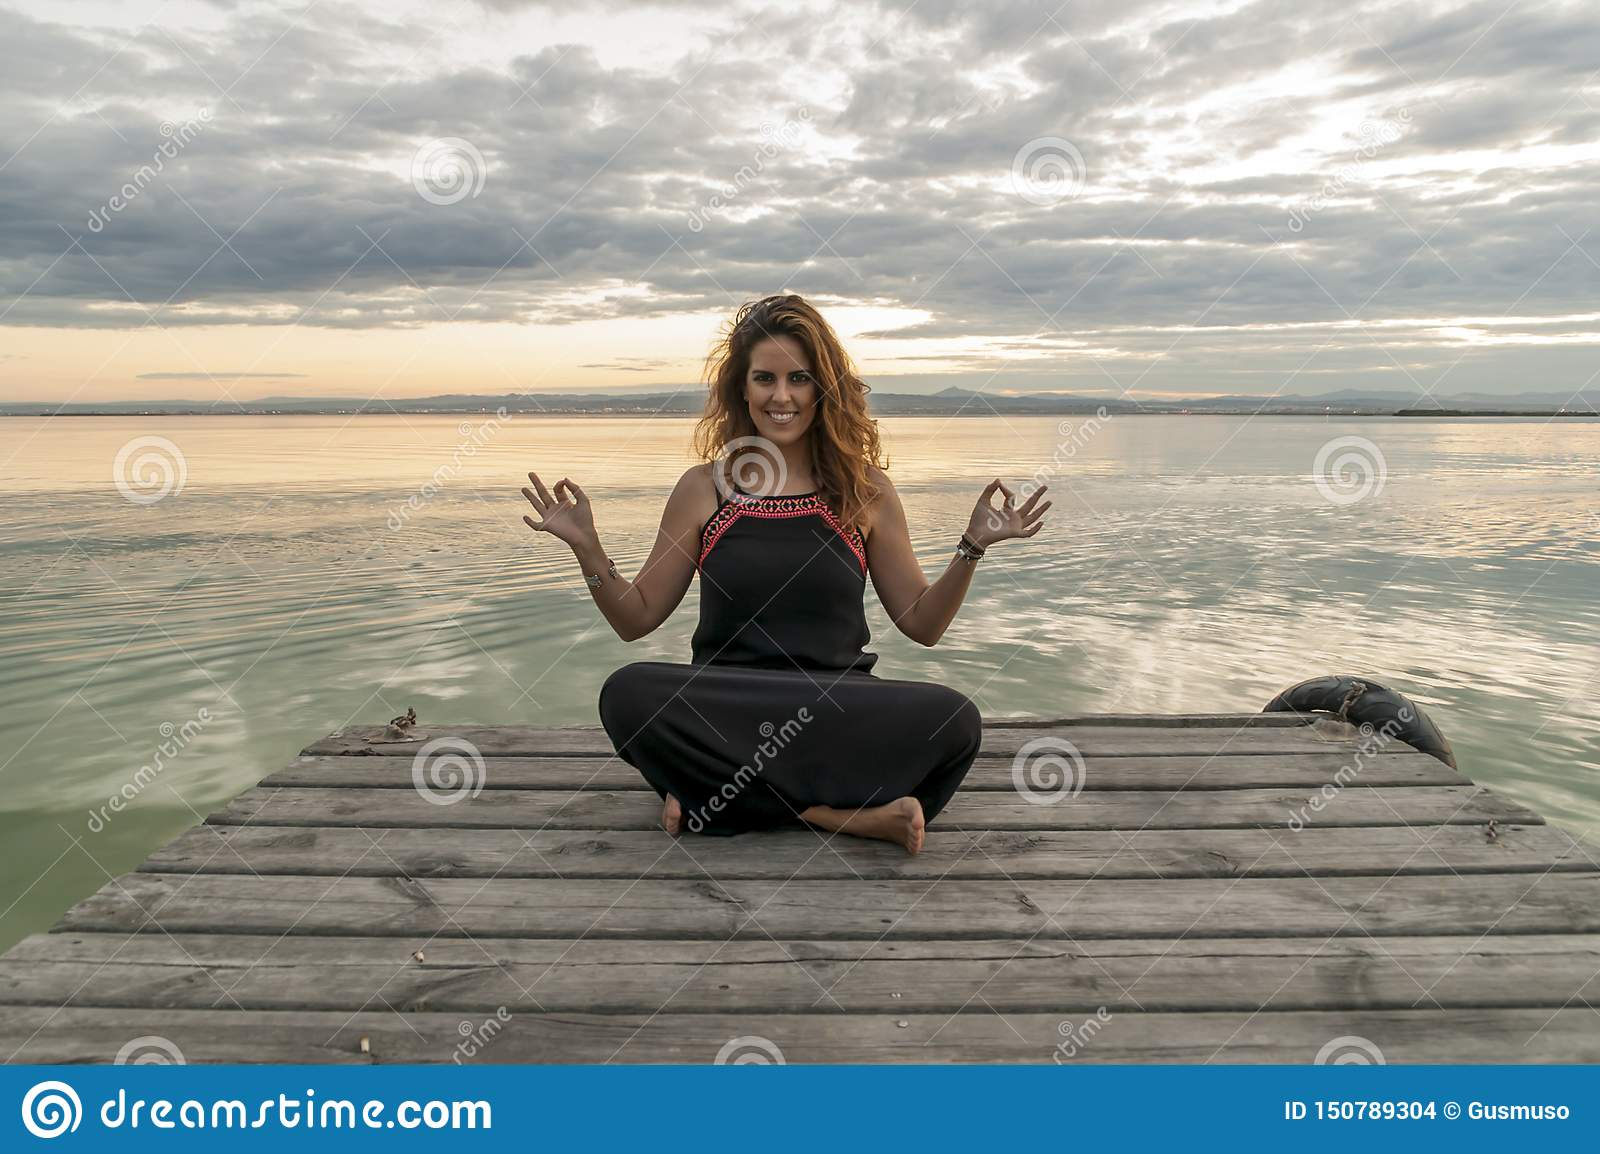 Smiling woman practicing meditation in the lotus yoga position on a wooden jetty